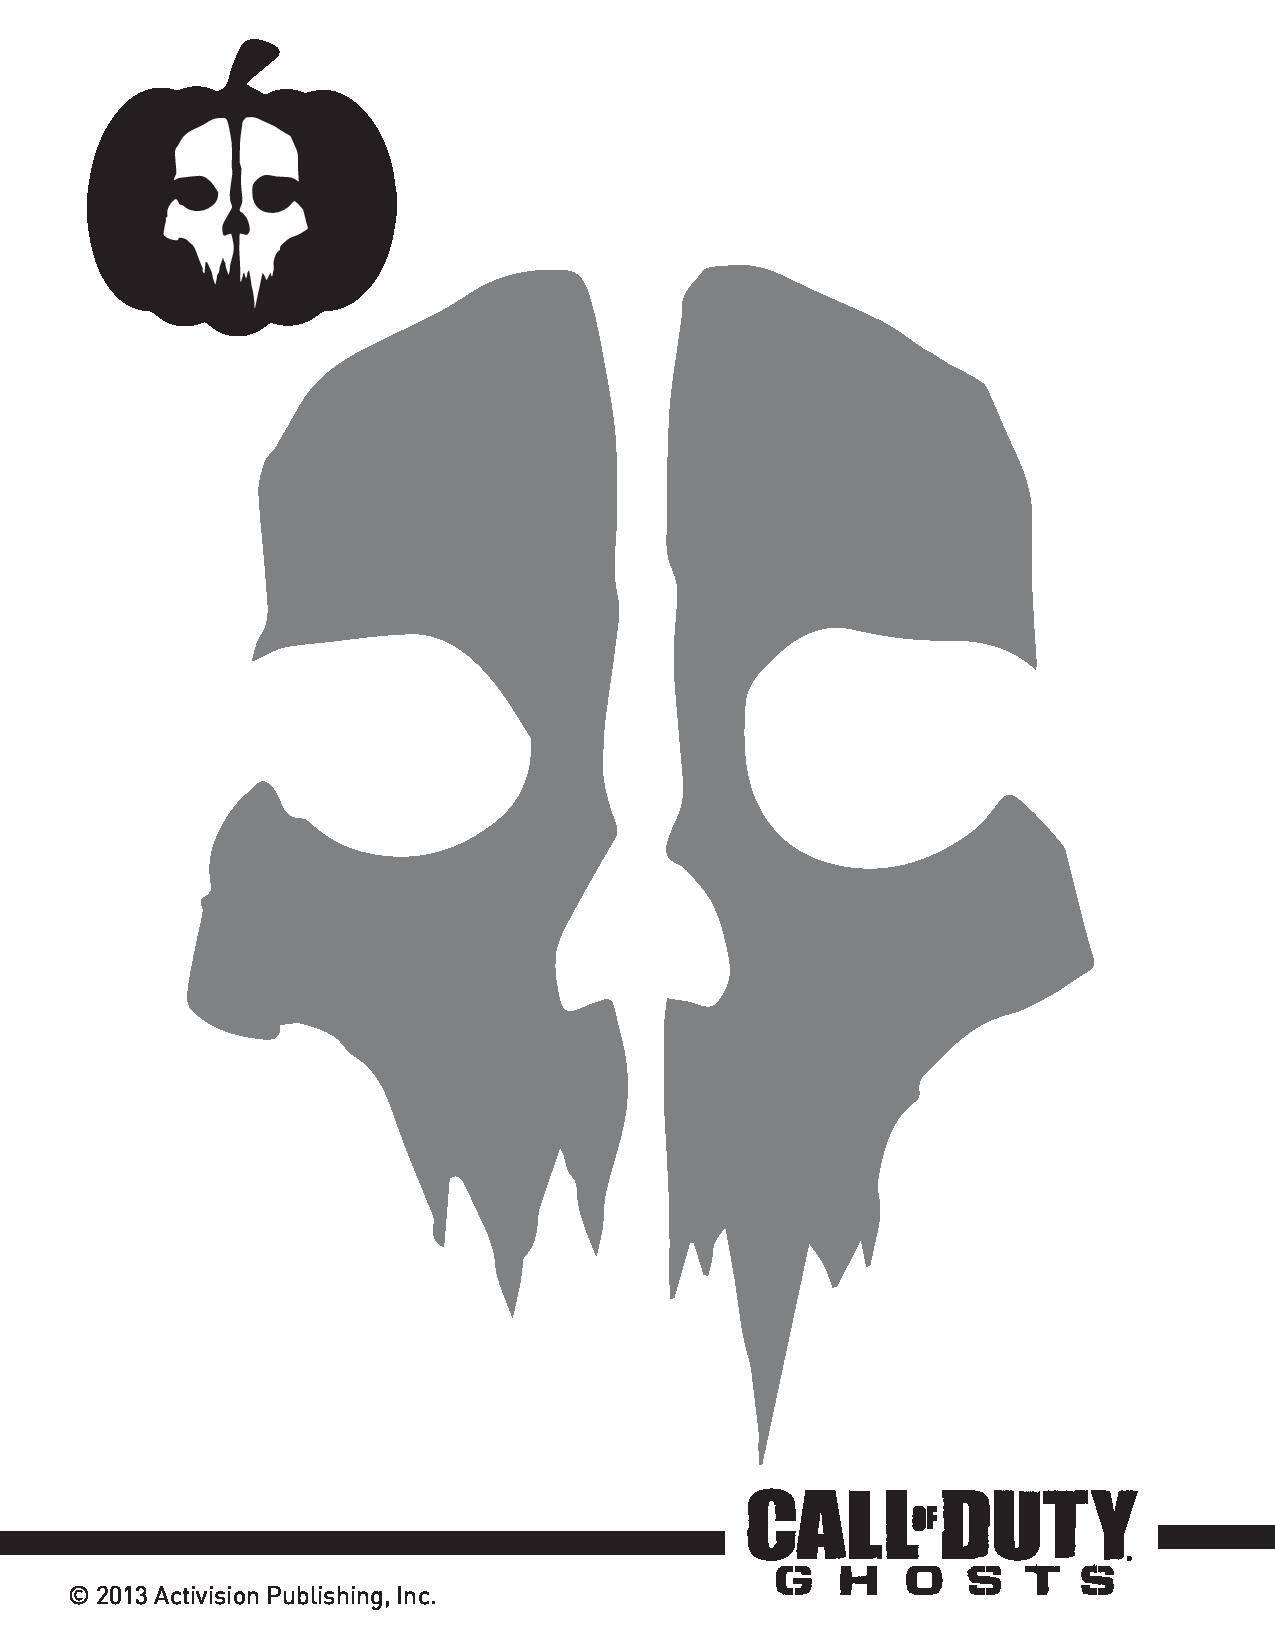 infinity ward on twitter codghosts halloween pumpkin stencils